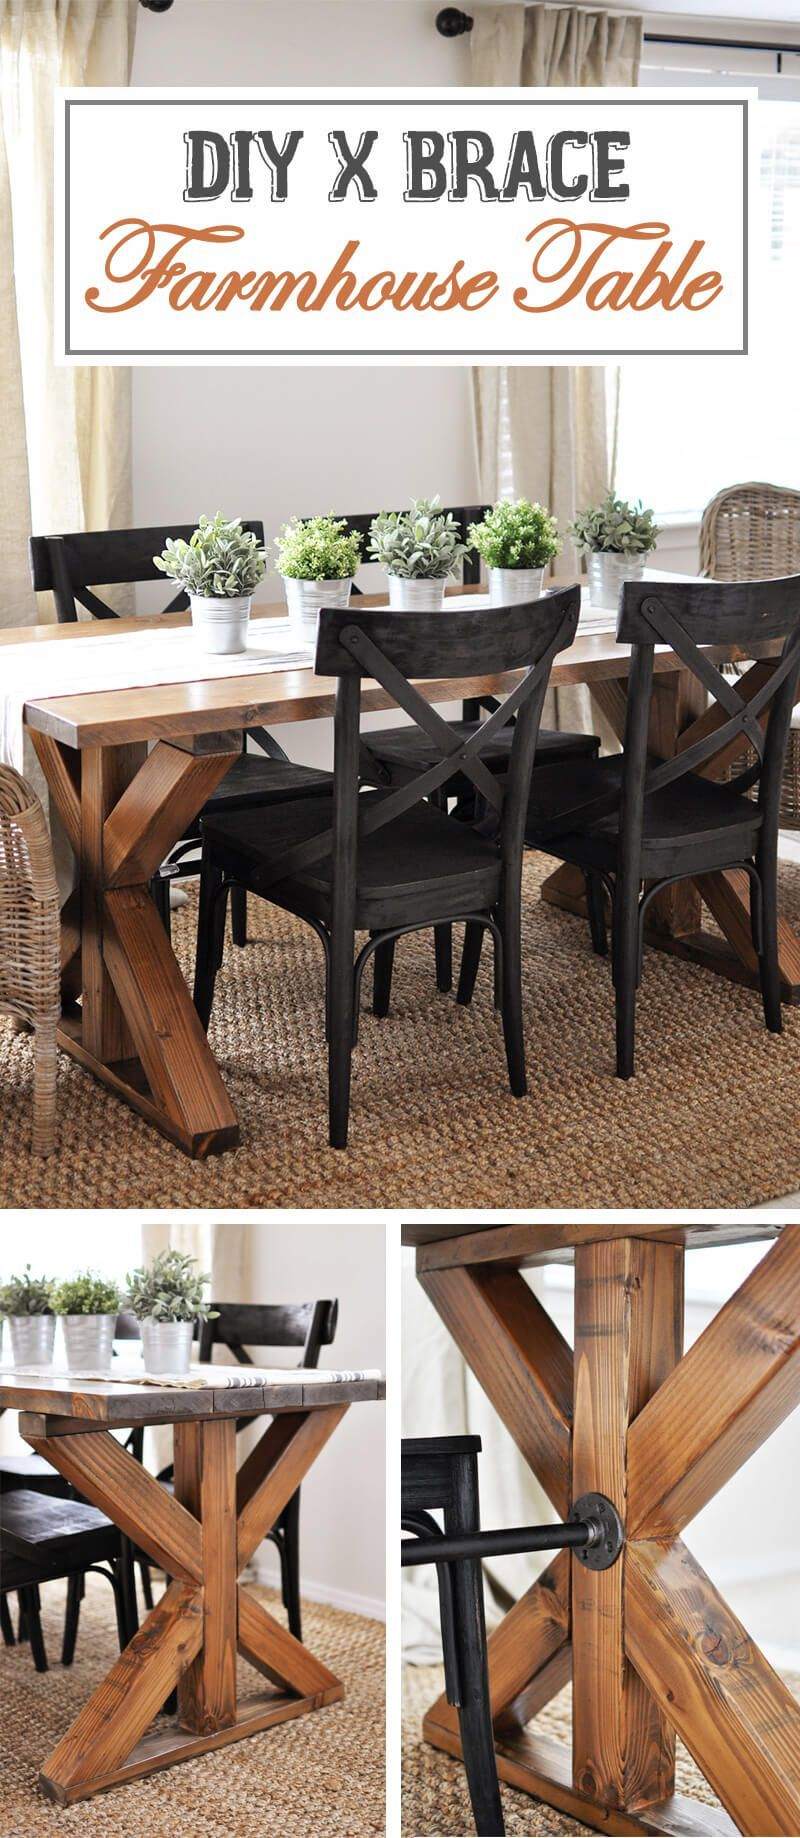 Xbrace Accent Farmhouse Table Design  Kitchen Ideas  Pinterest Inspiration Farm Style Dining Room Table Review